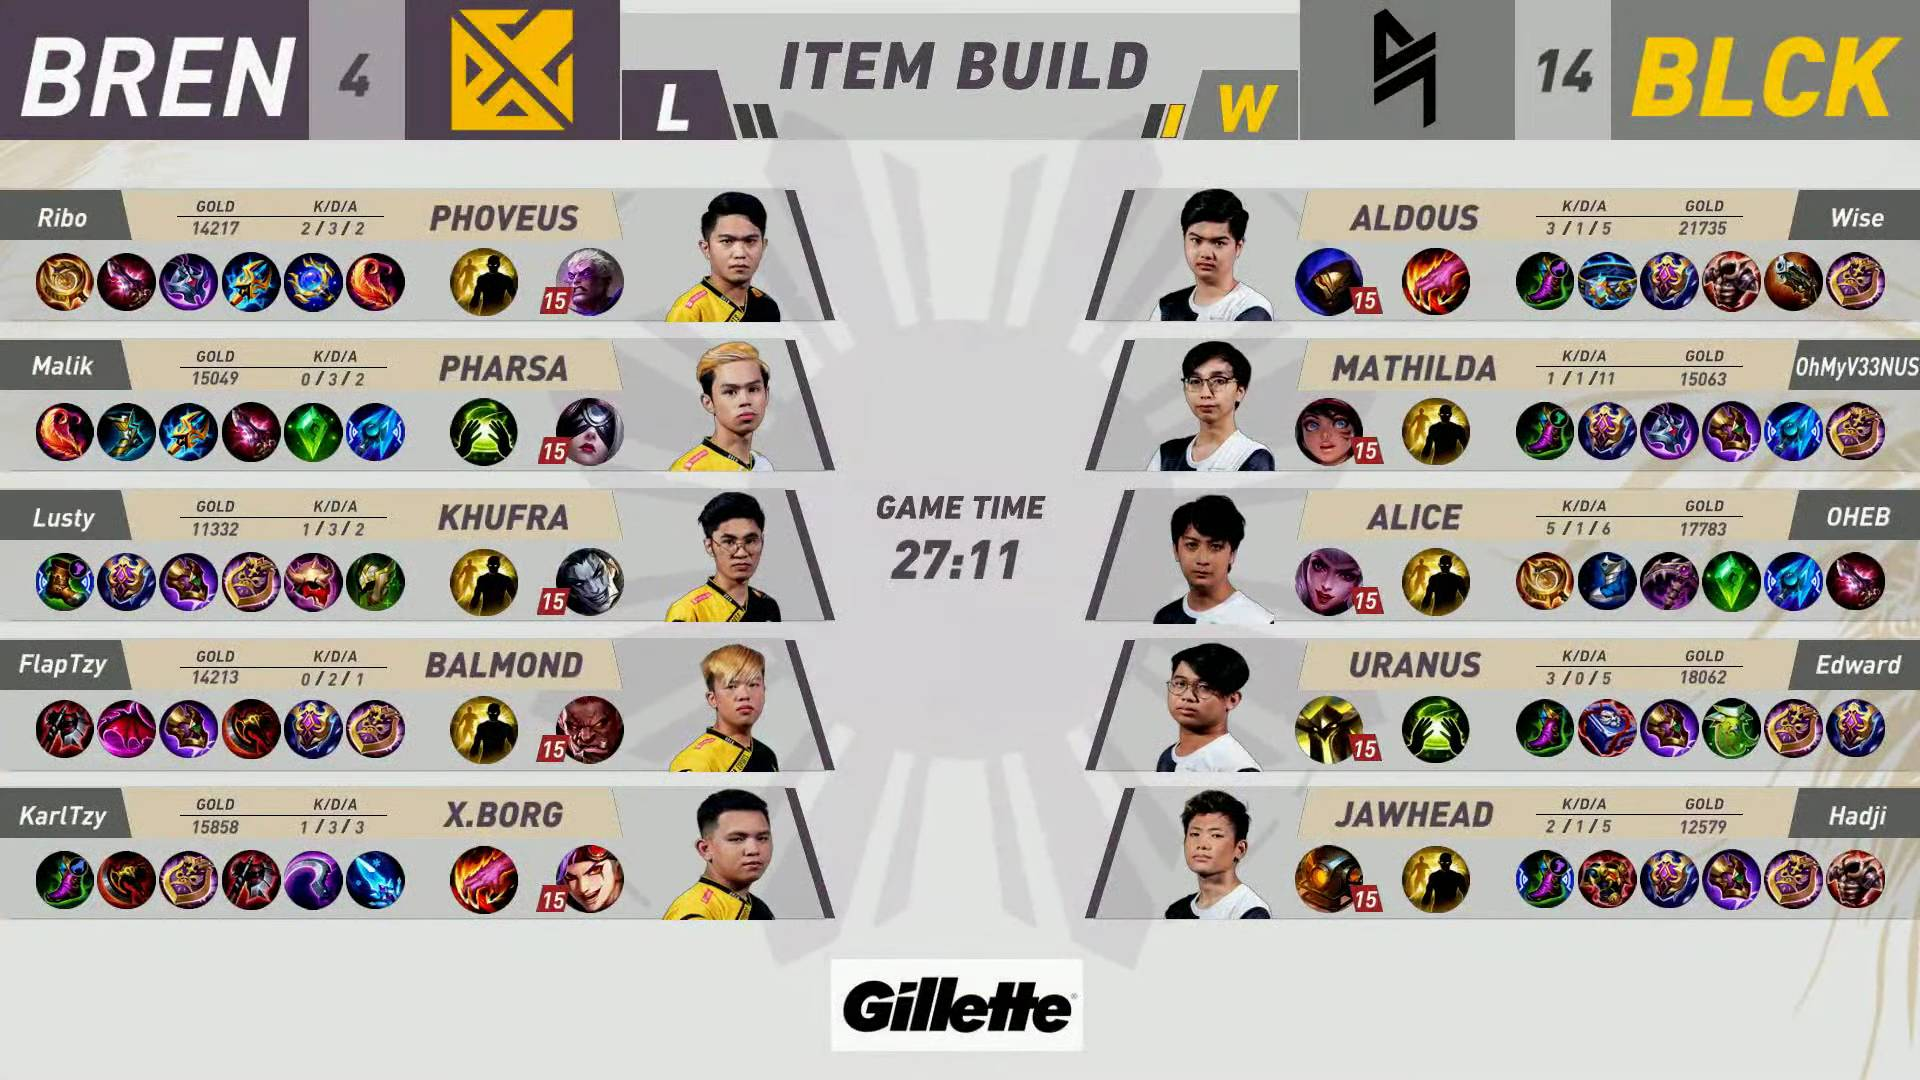 MPL-PH-8-Blacklist-def-Bren-Game-1 Blacklist weathers KarlTzy's Paquito to remain unscathed in MPL PH ESports Mobile Legends MPL-PH News  - philippine sports news